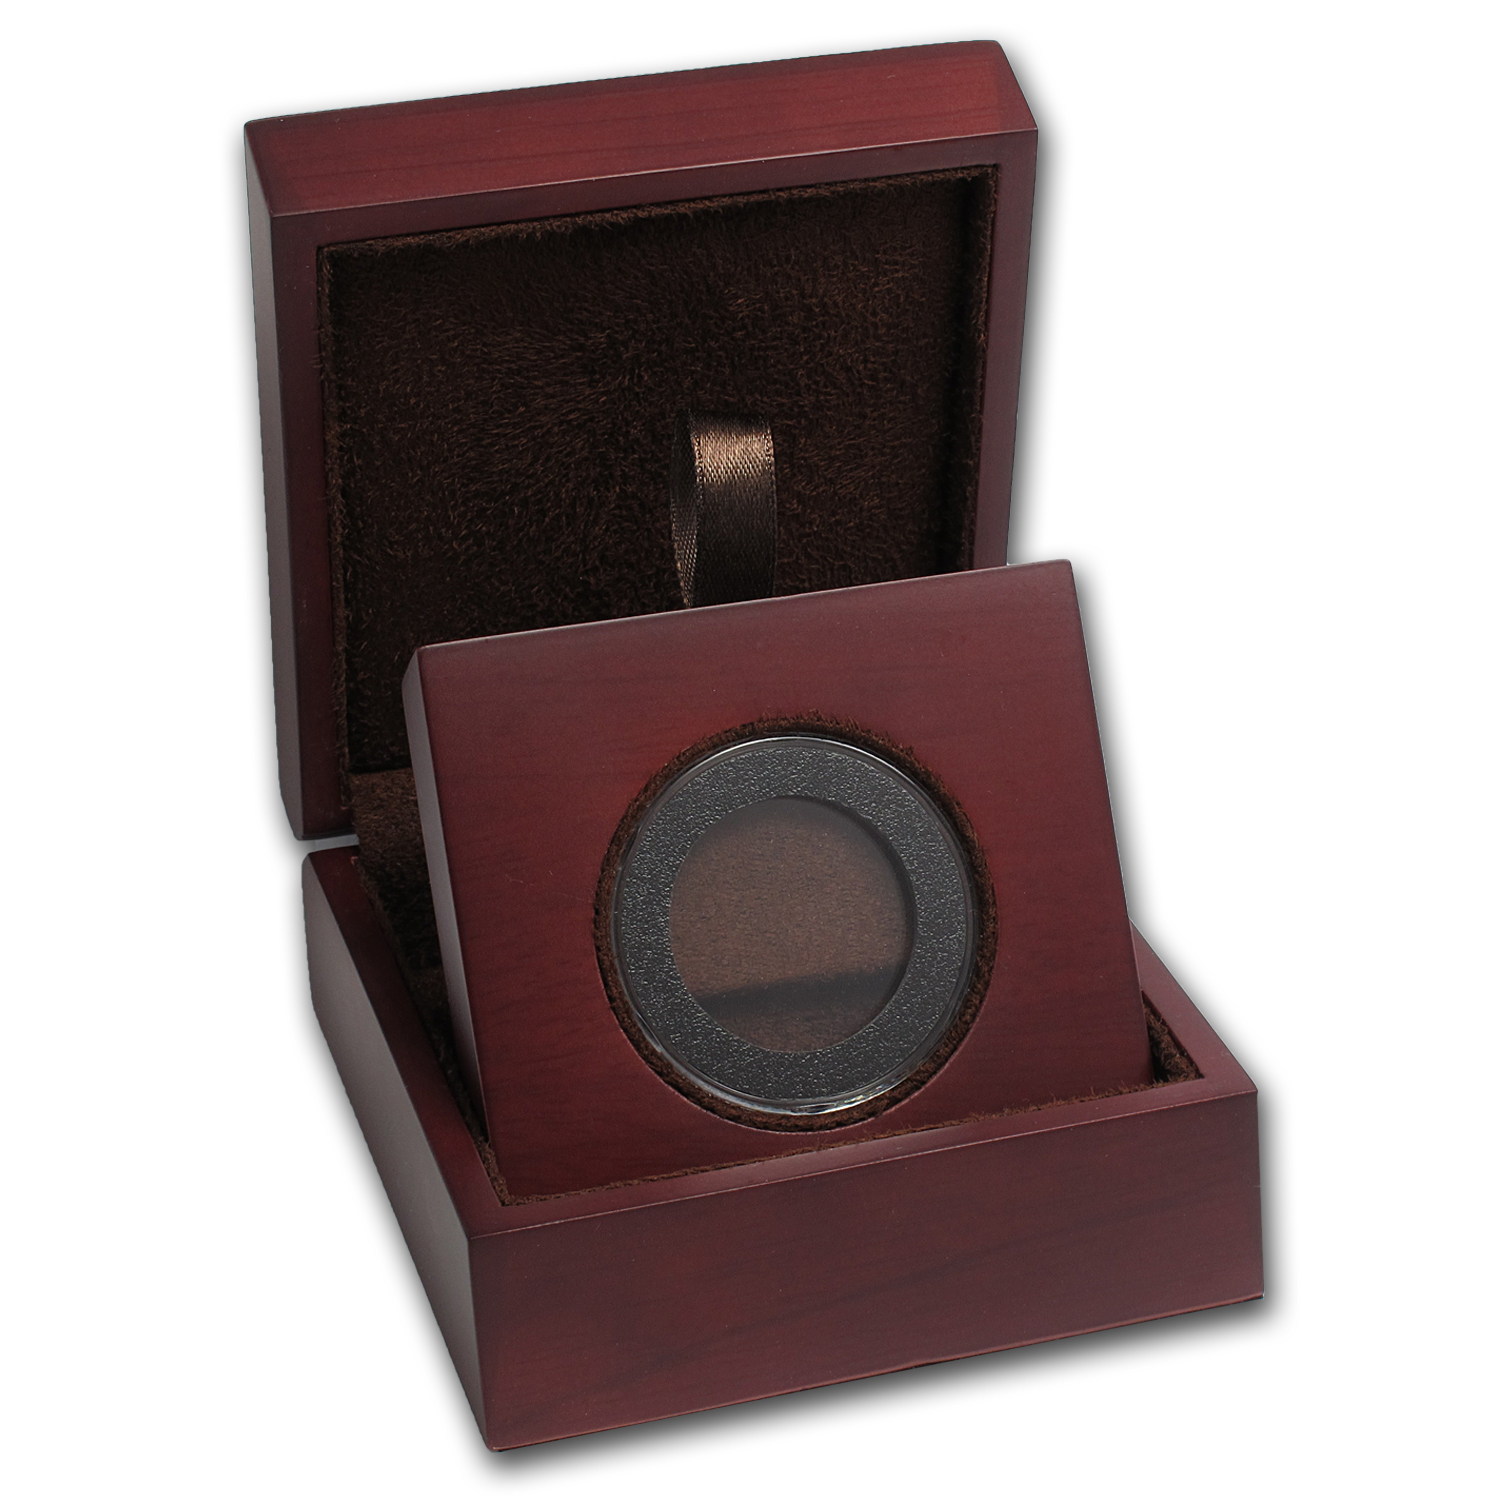 APMEX Wood Gift Box - Includes 30 mm Air-Tite Holder with Gasket